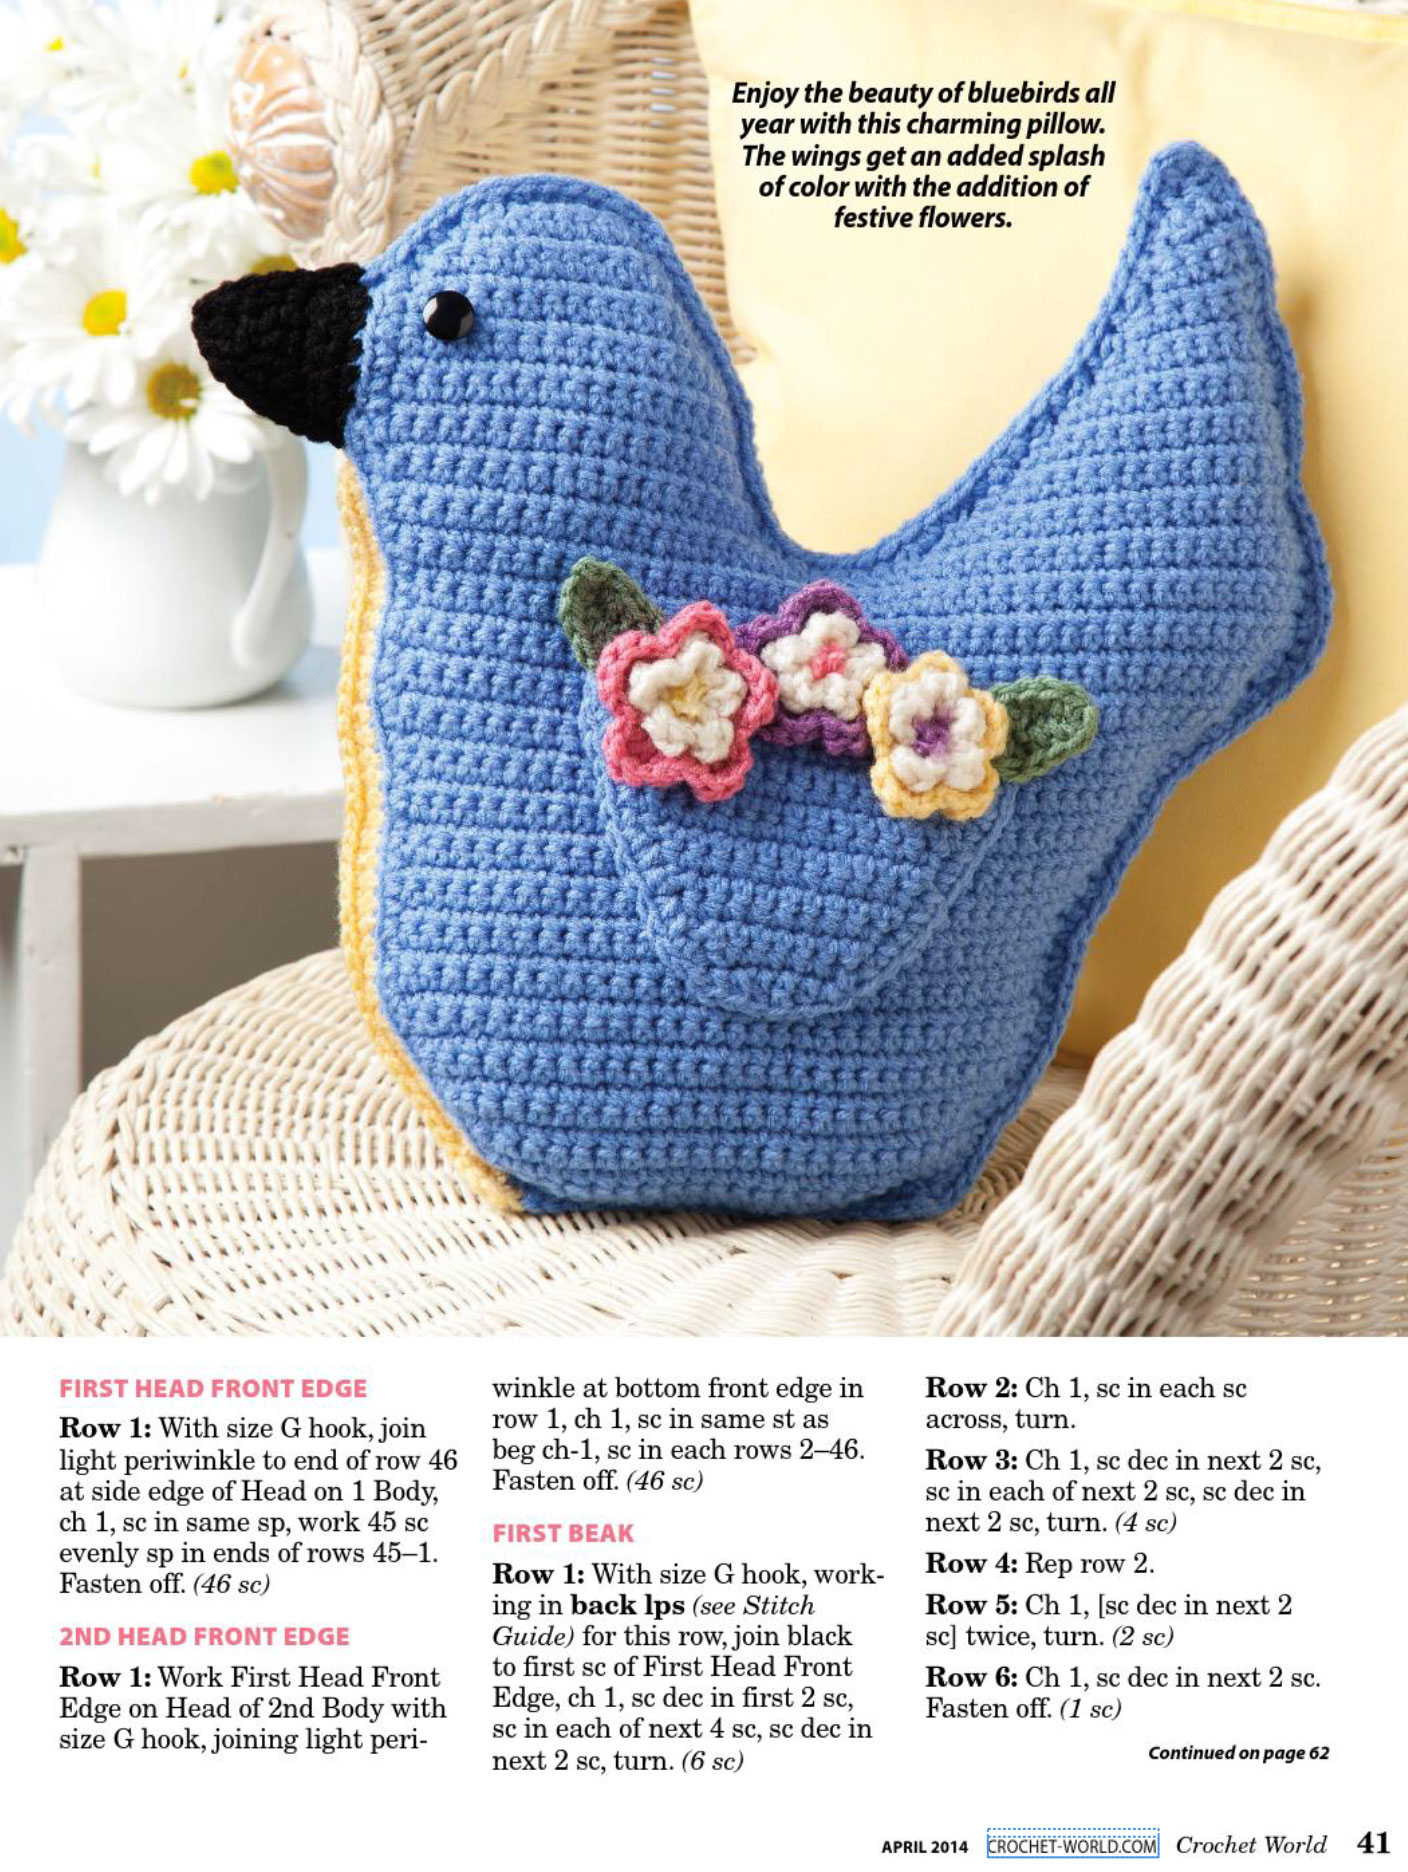 Bluebird-pillow-crochet-pattern-1